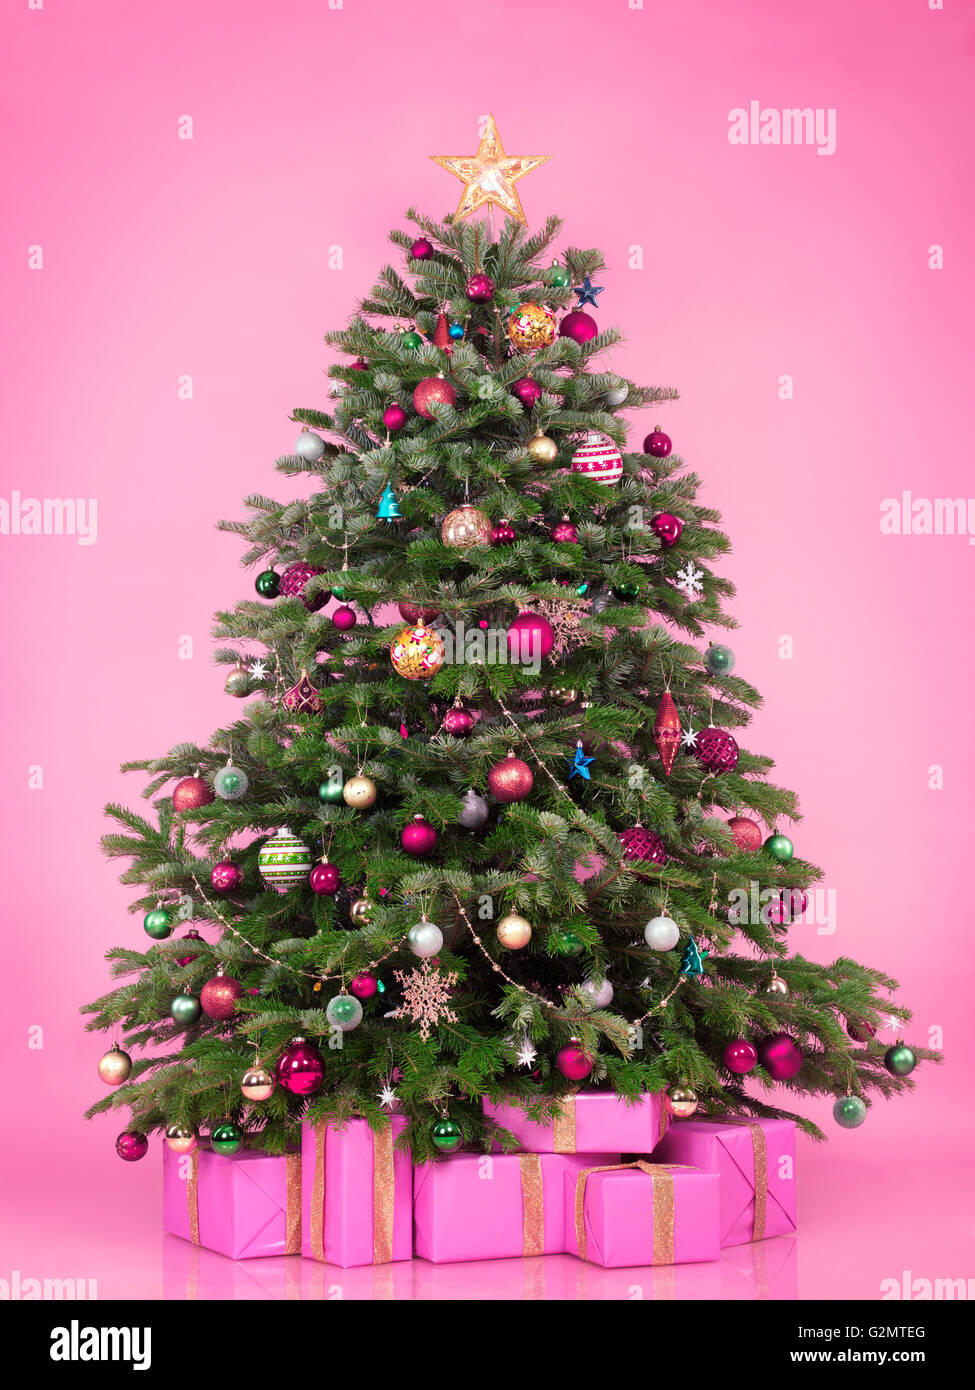 decorated christmas tree with presents and gift boxes